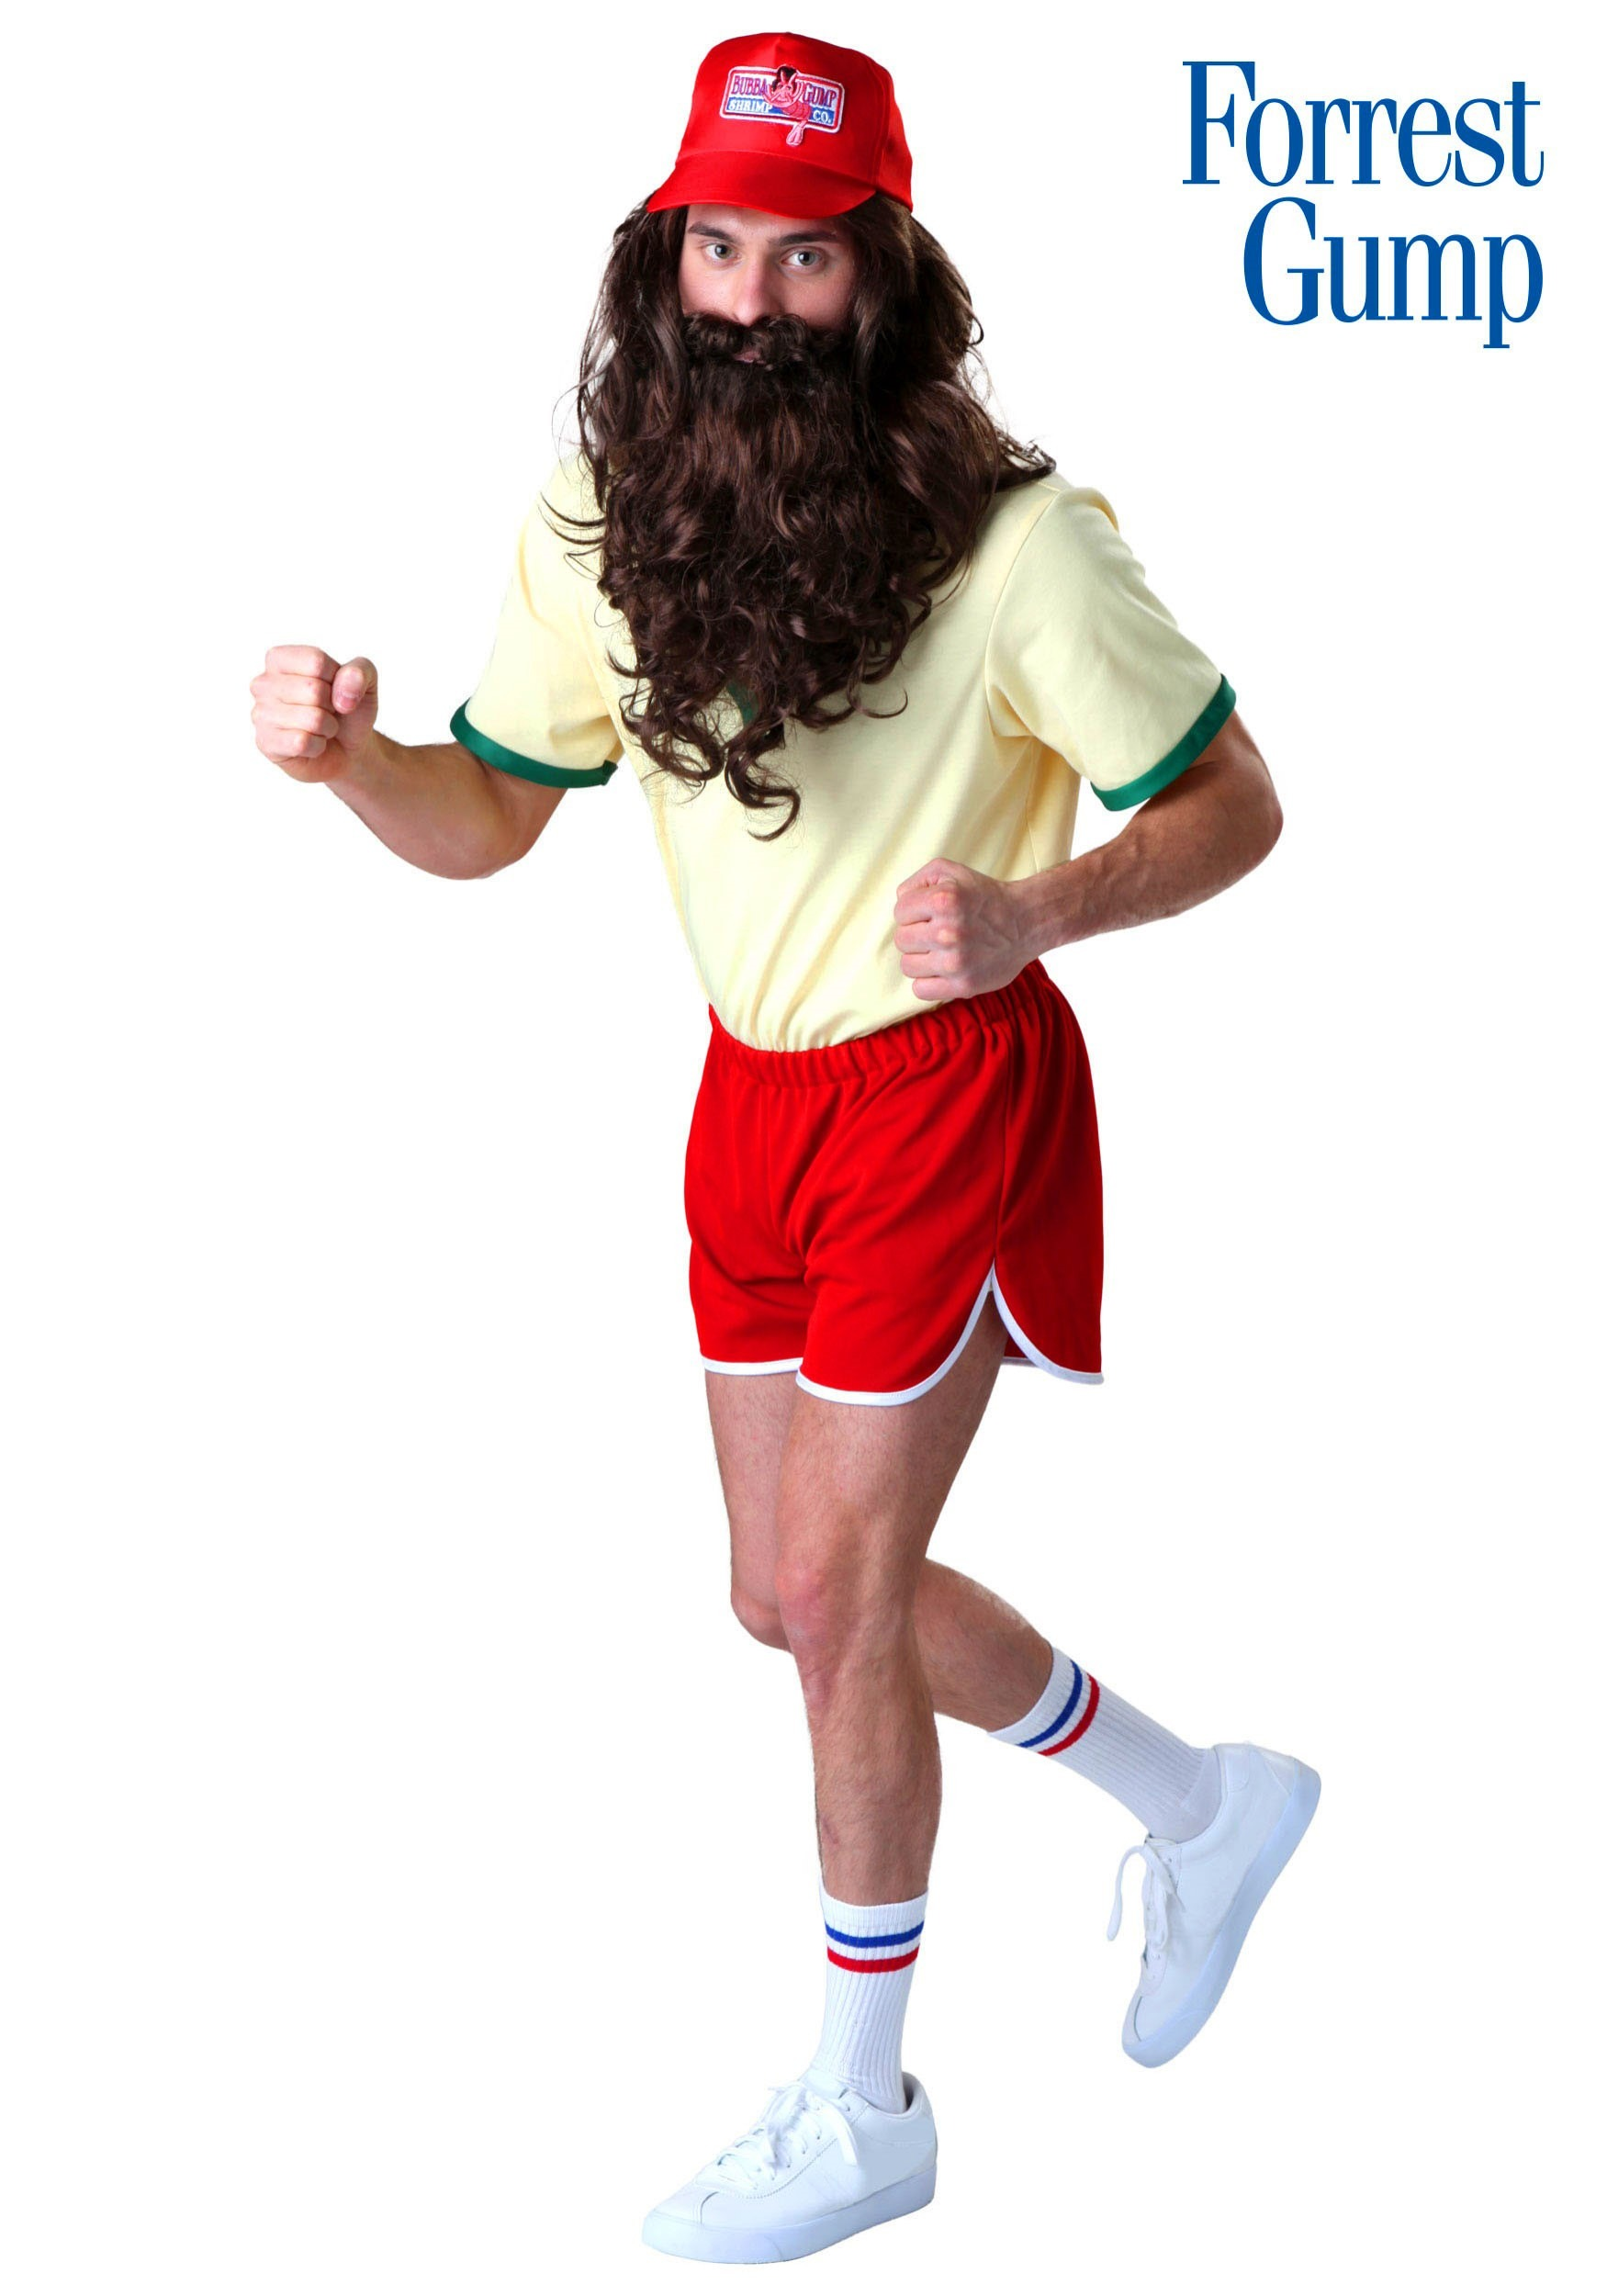 forrest gump costumes & suits - halloweencostumes